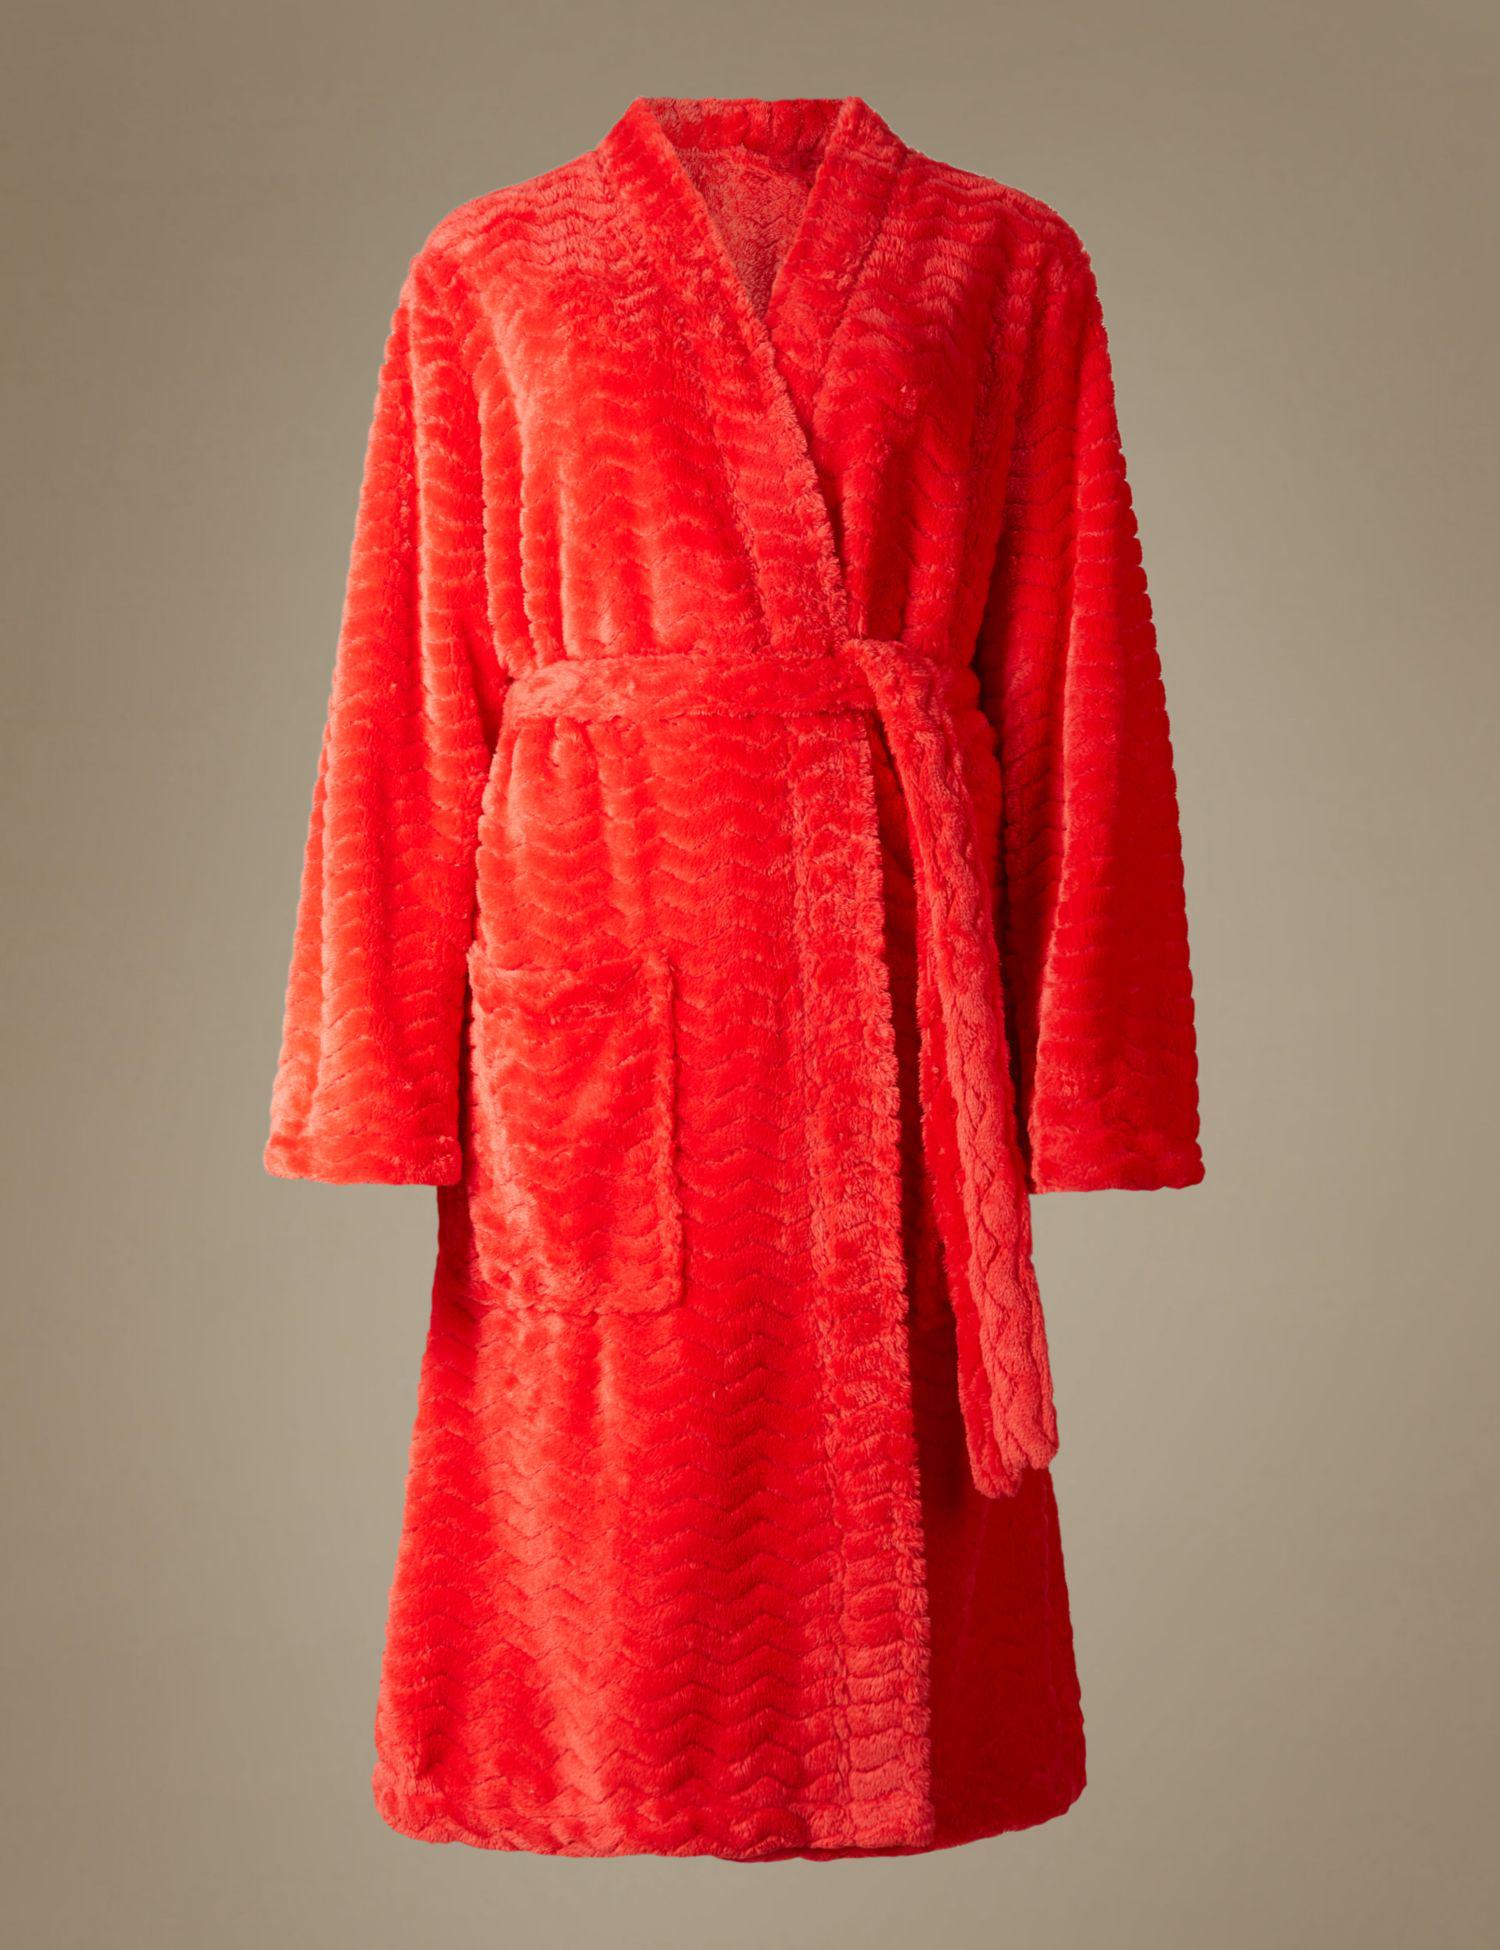 b7d4bd2f60 Marks   Spencer Textured Supersoft Kimono Dressing Gown in Red - Lyst